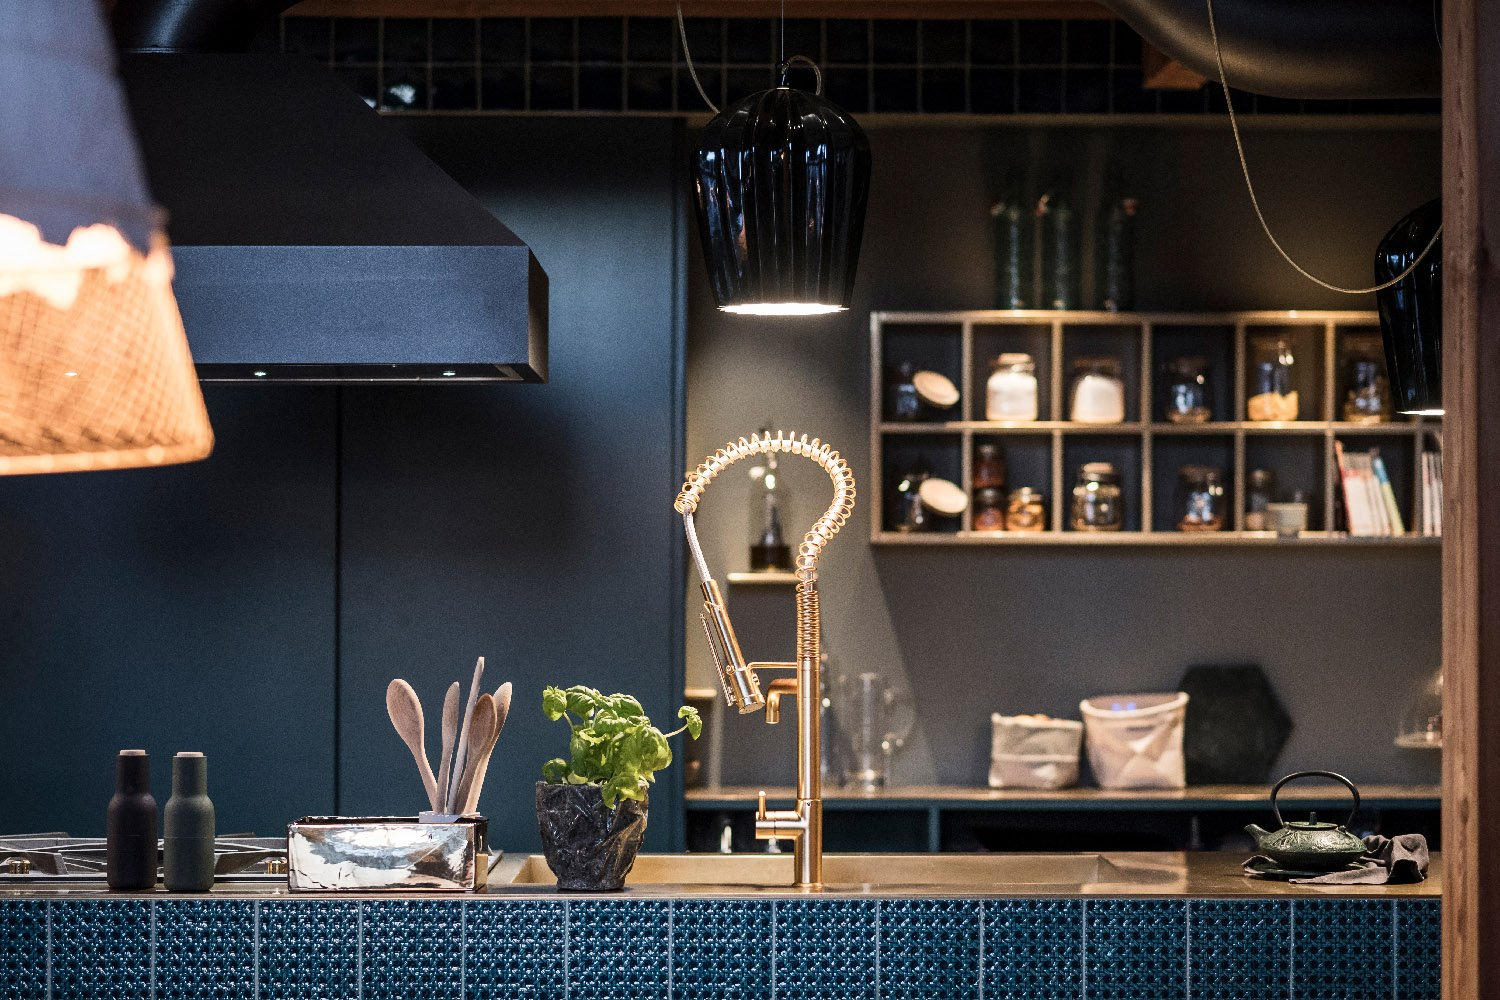 The cupboards behind the cooking area are open and serve as a storage, but can also be closed off by a sliding door Alex Filz